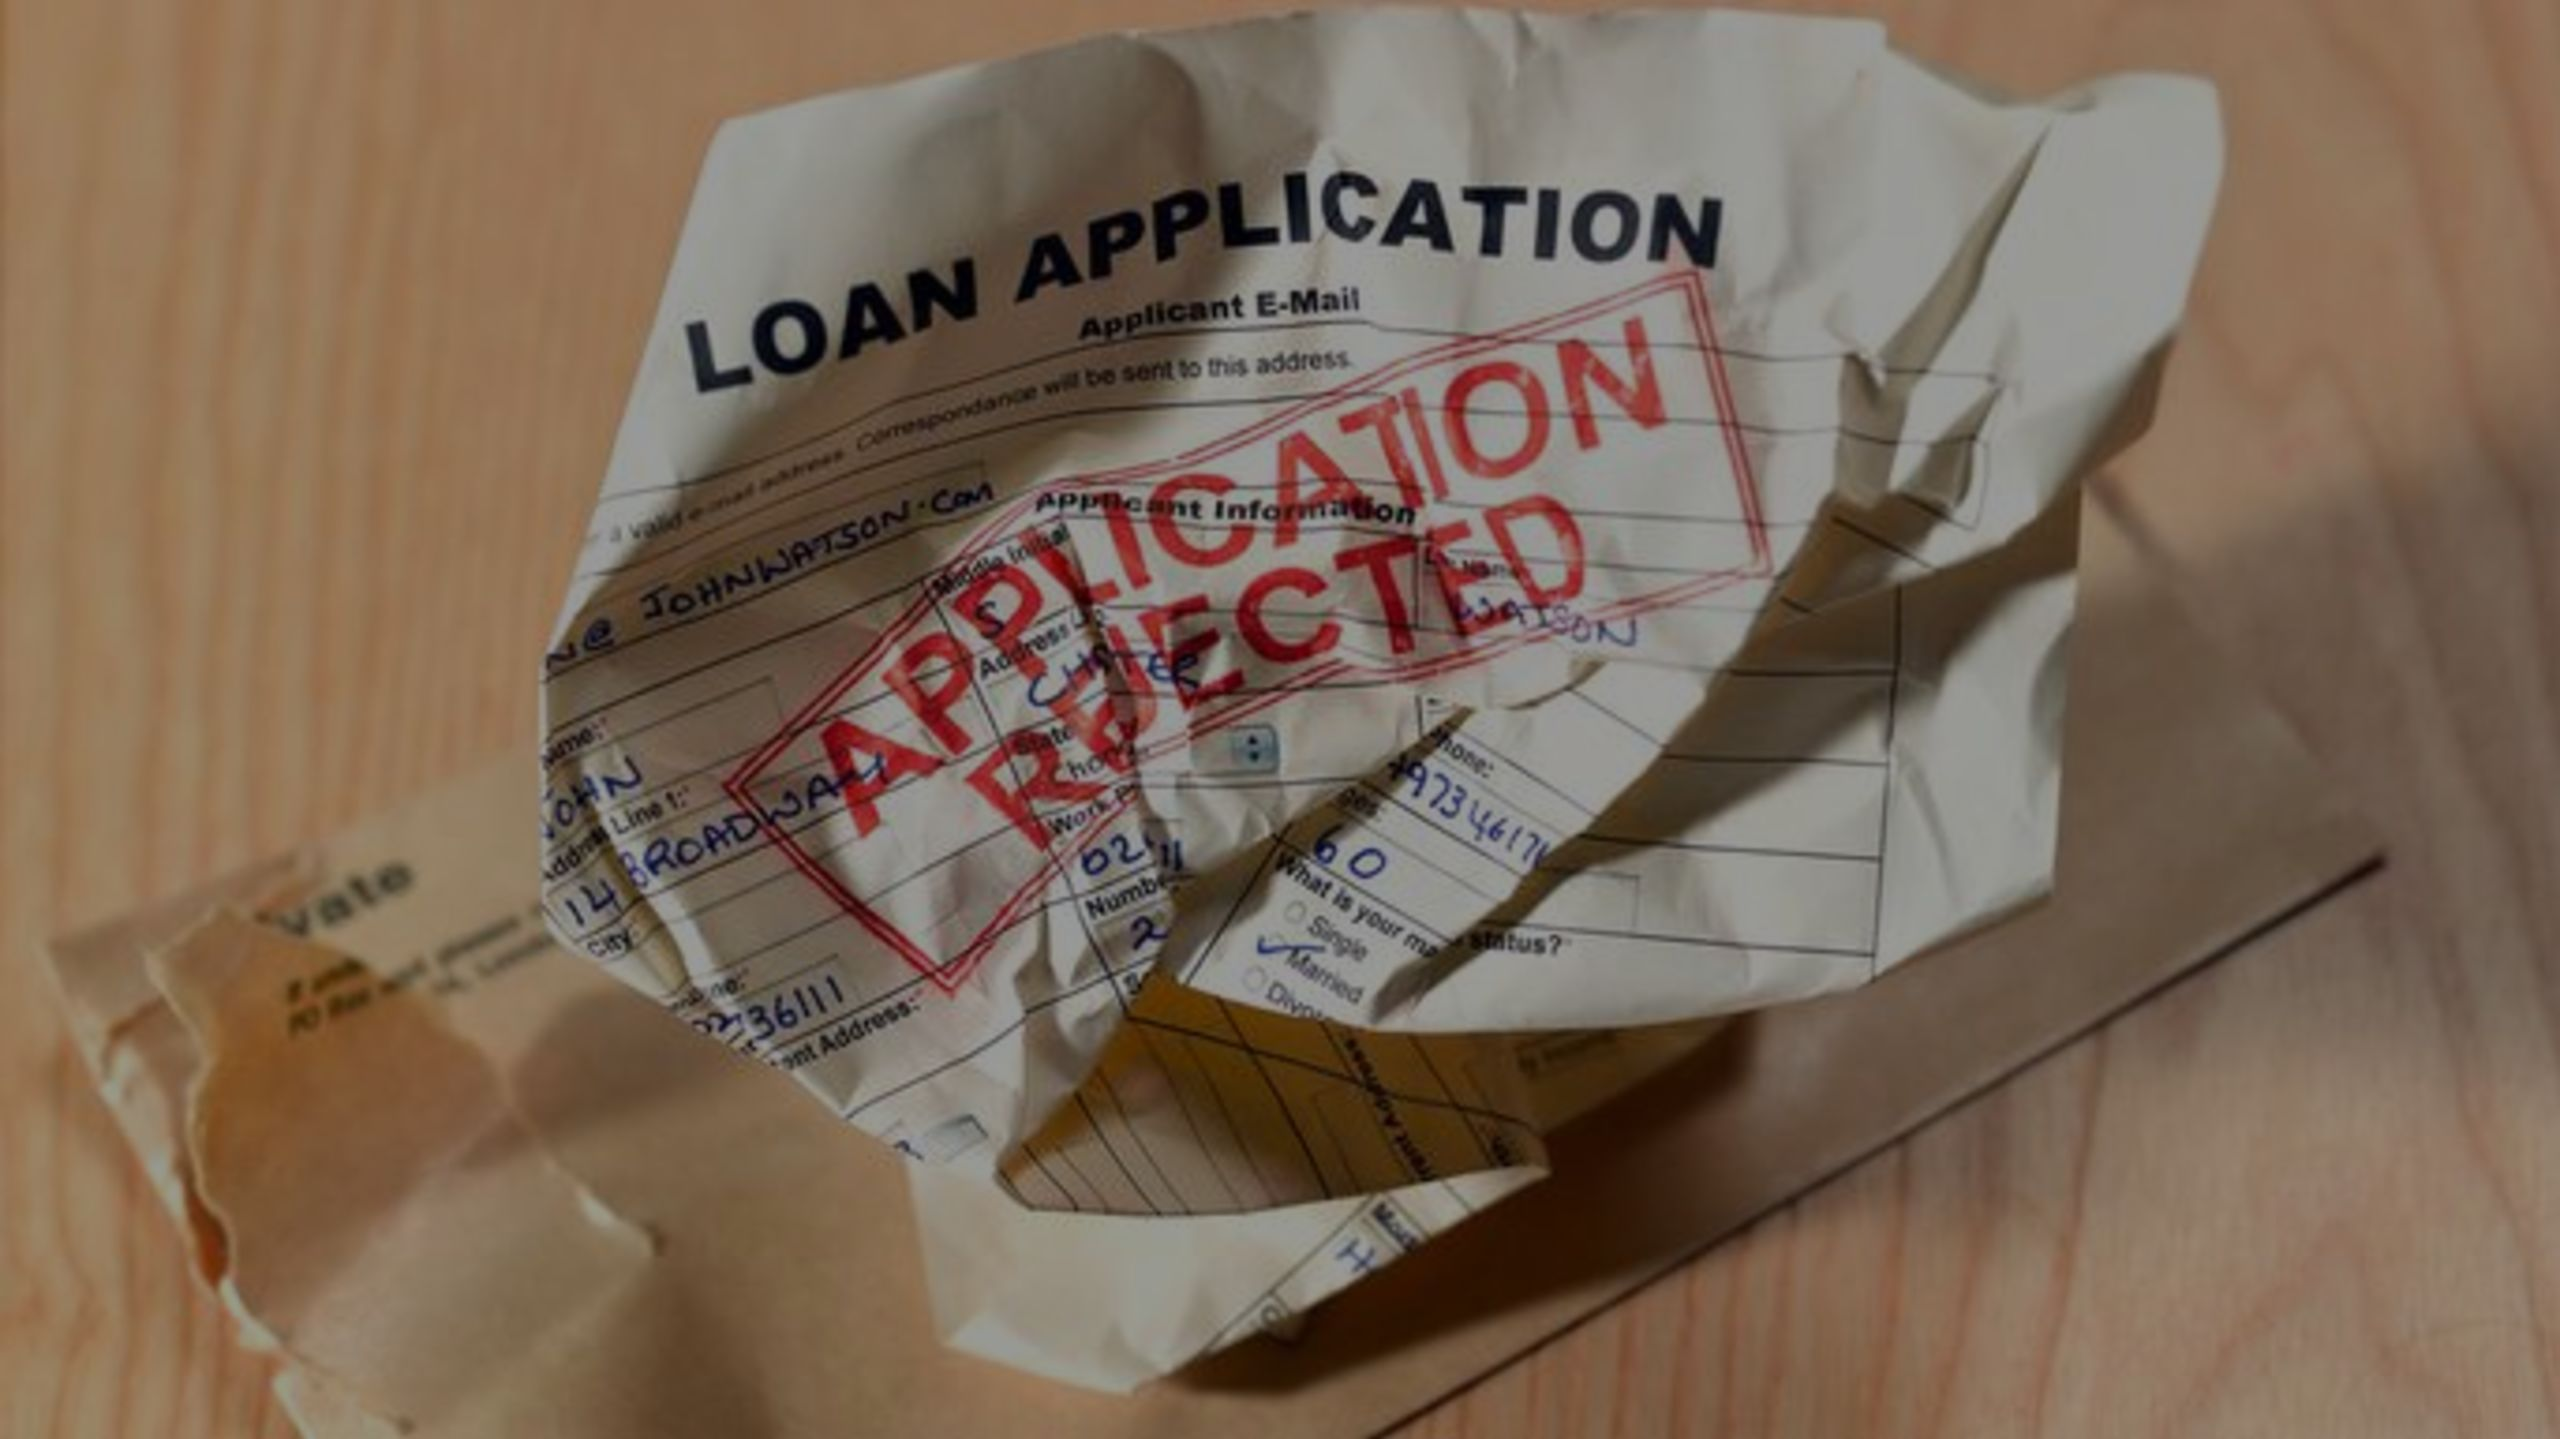 5 Mortifying Reasons Mortgage Applications End Up in the 'Reject' Pile